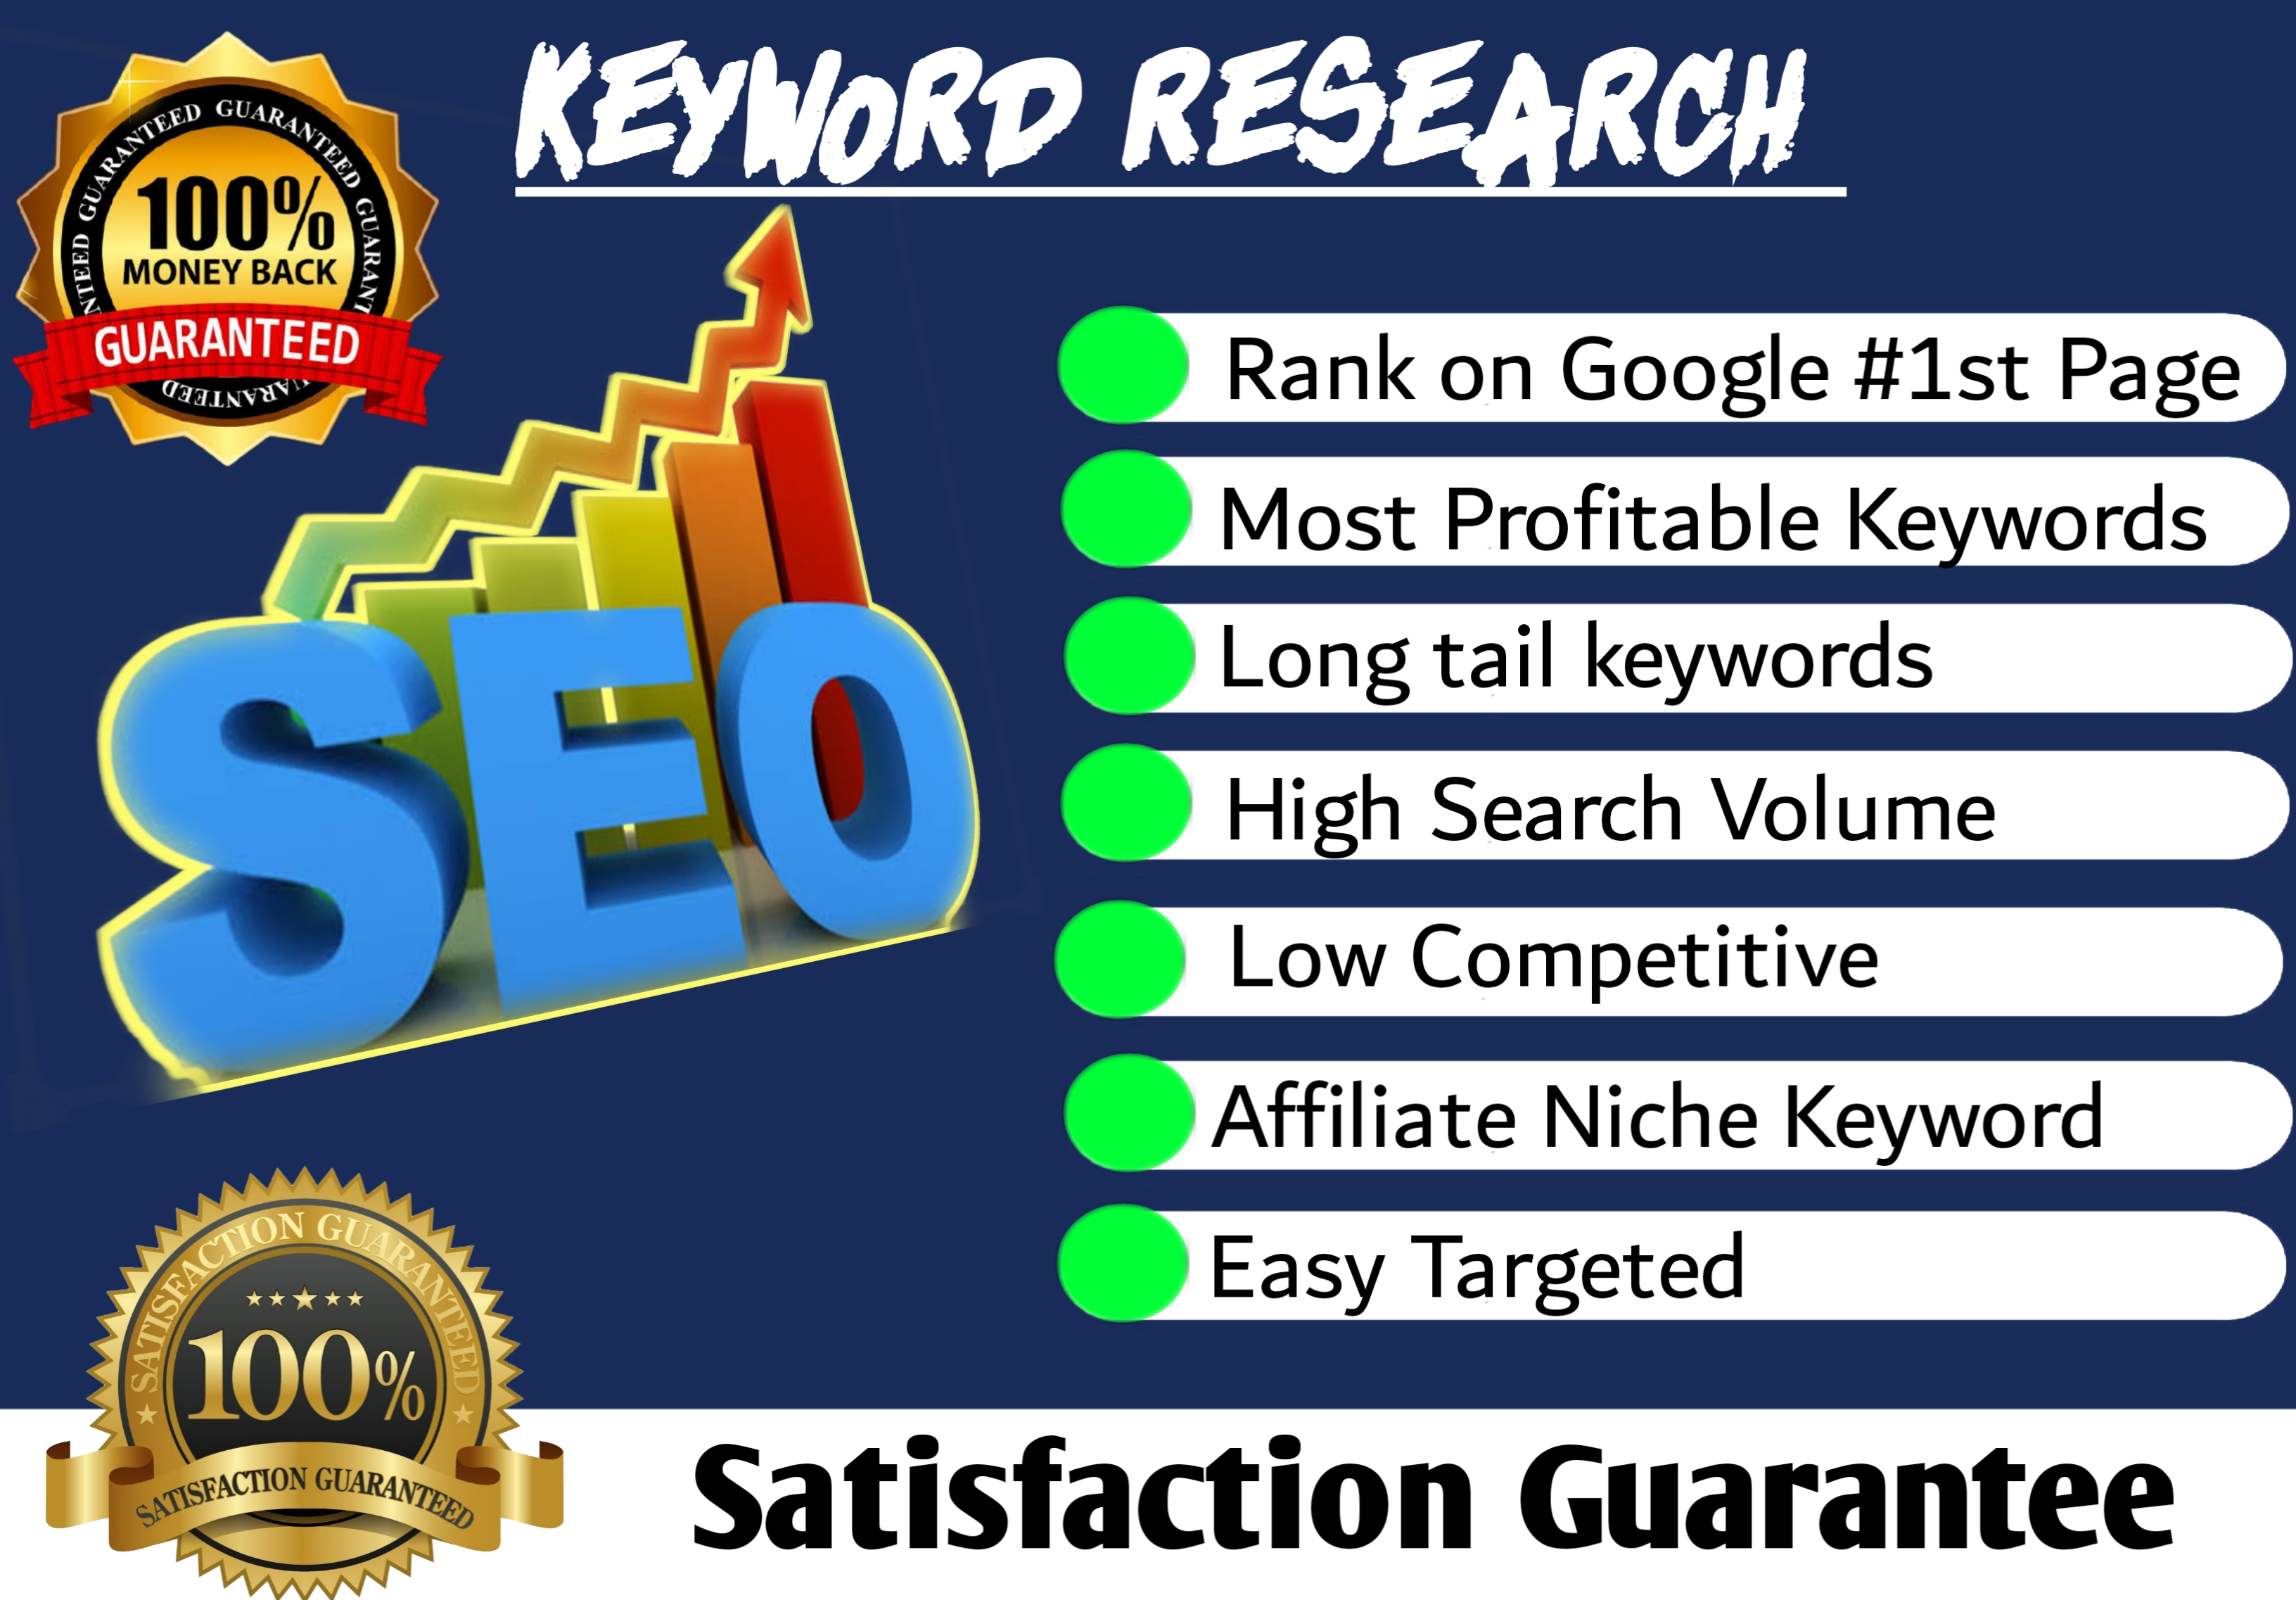 Do research most profitable keywords for your website